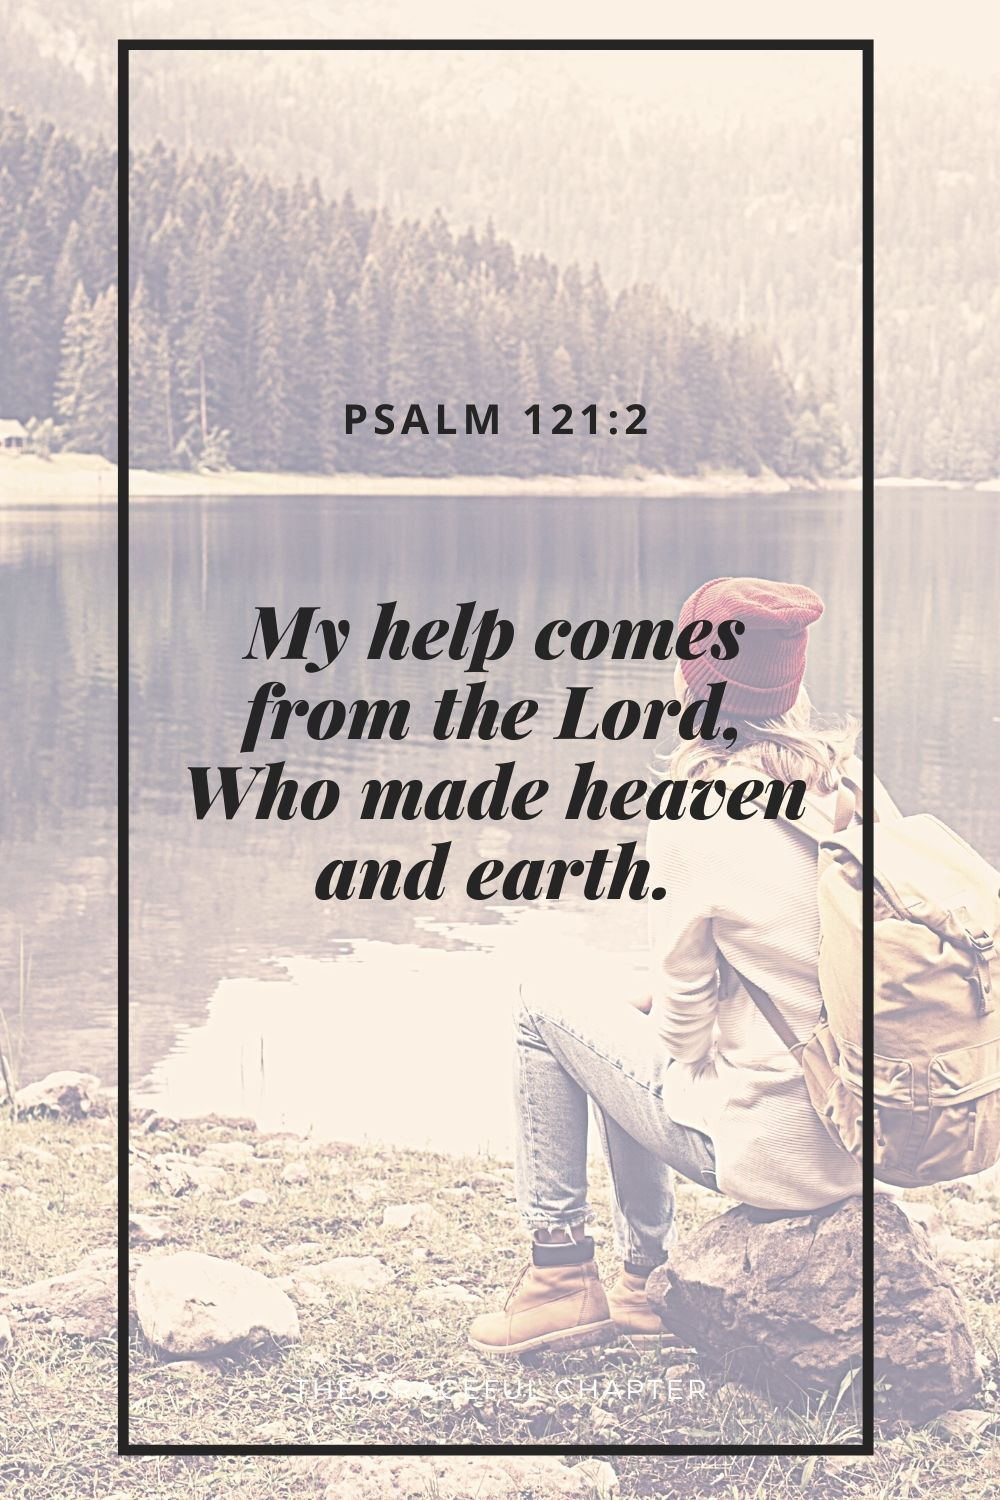 My help comes from the Lord, Who made heaven and earth. Psalm 121:2